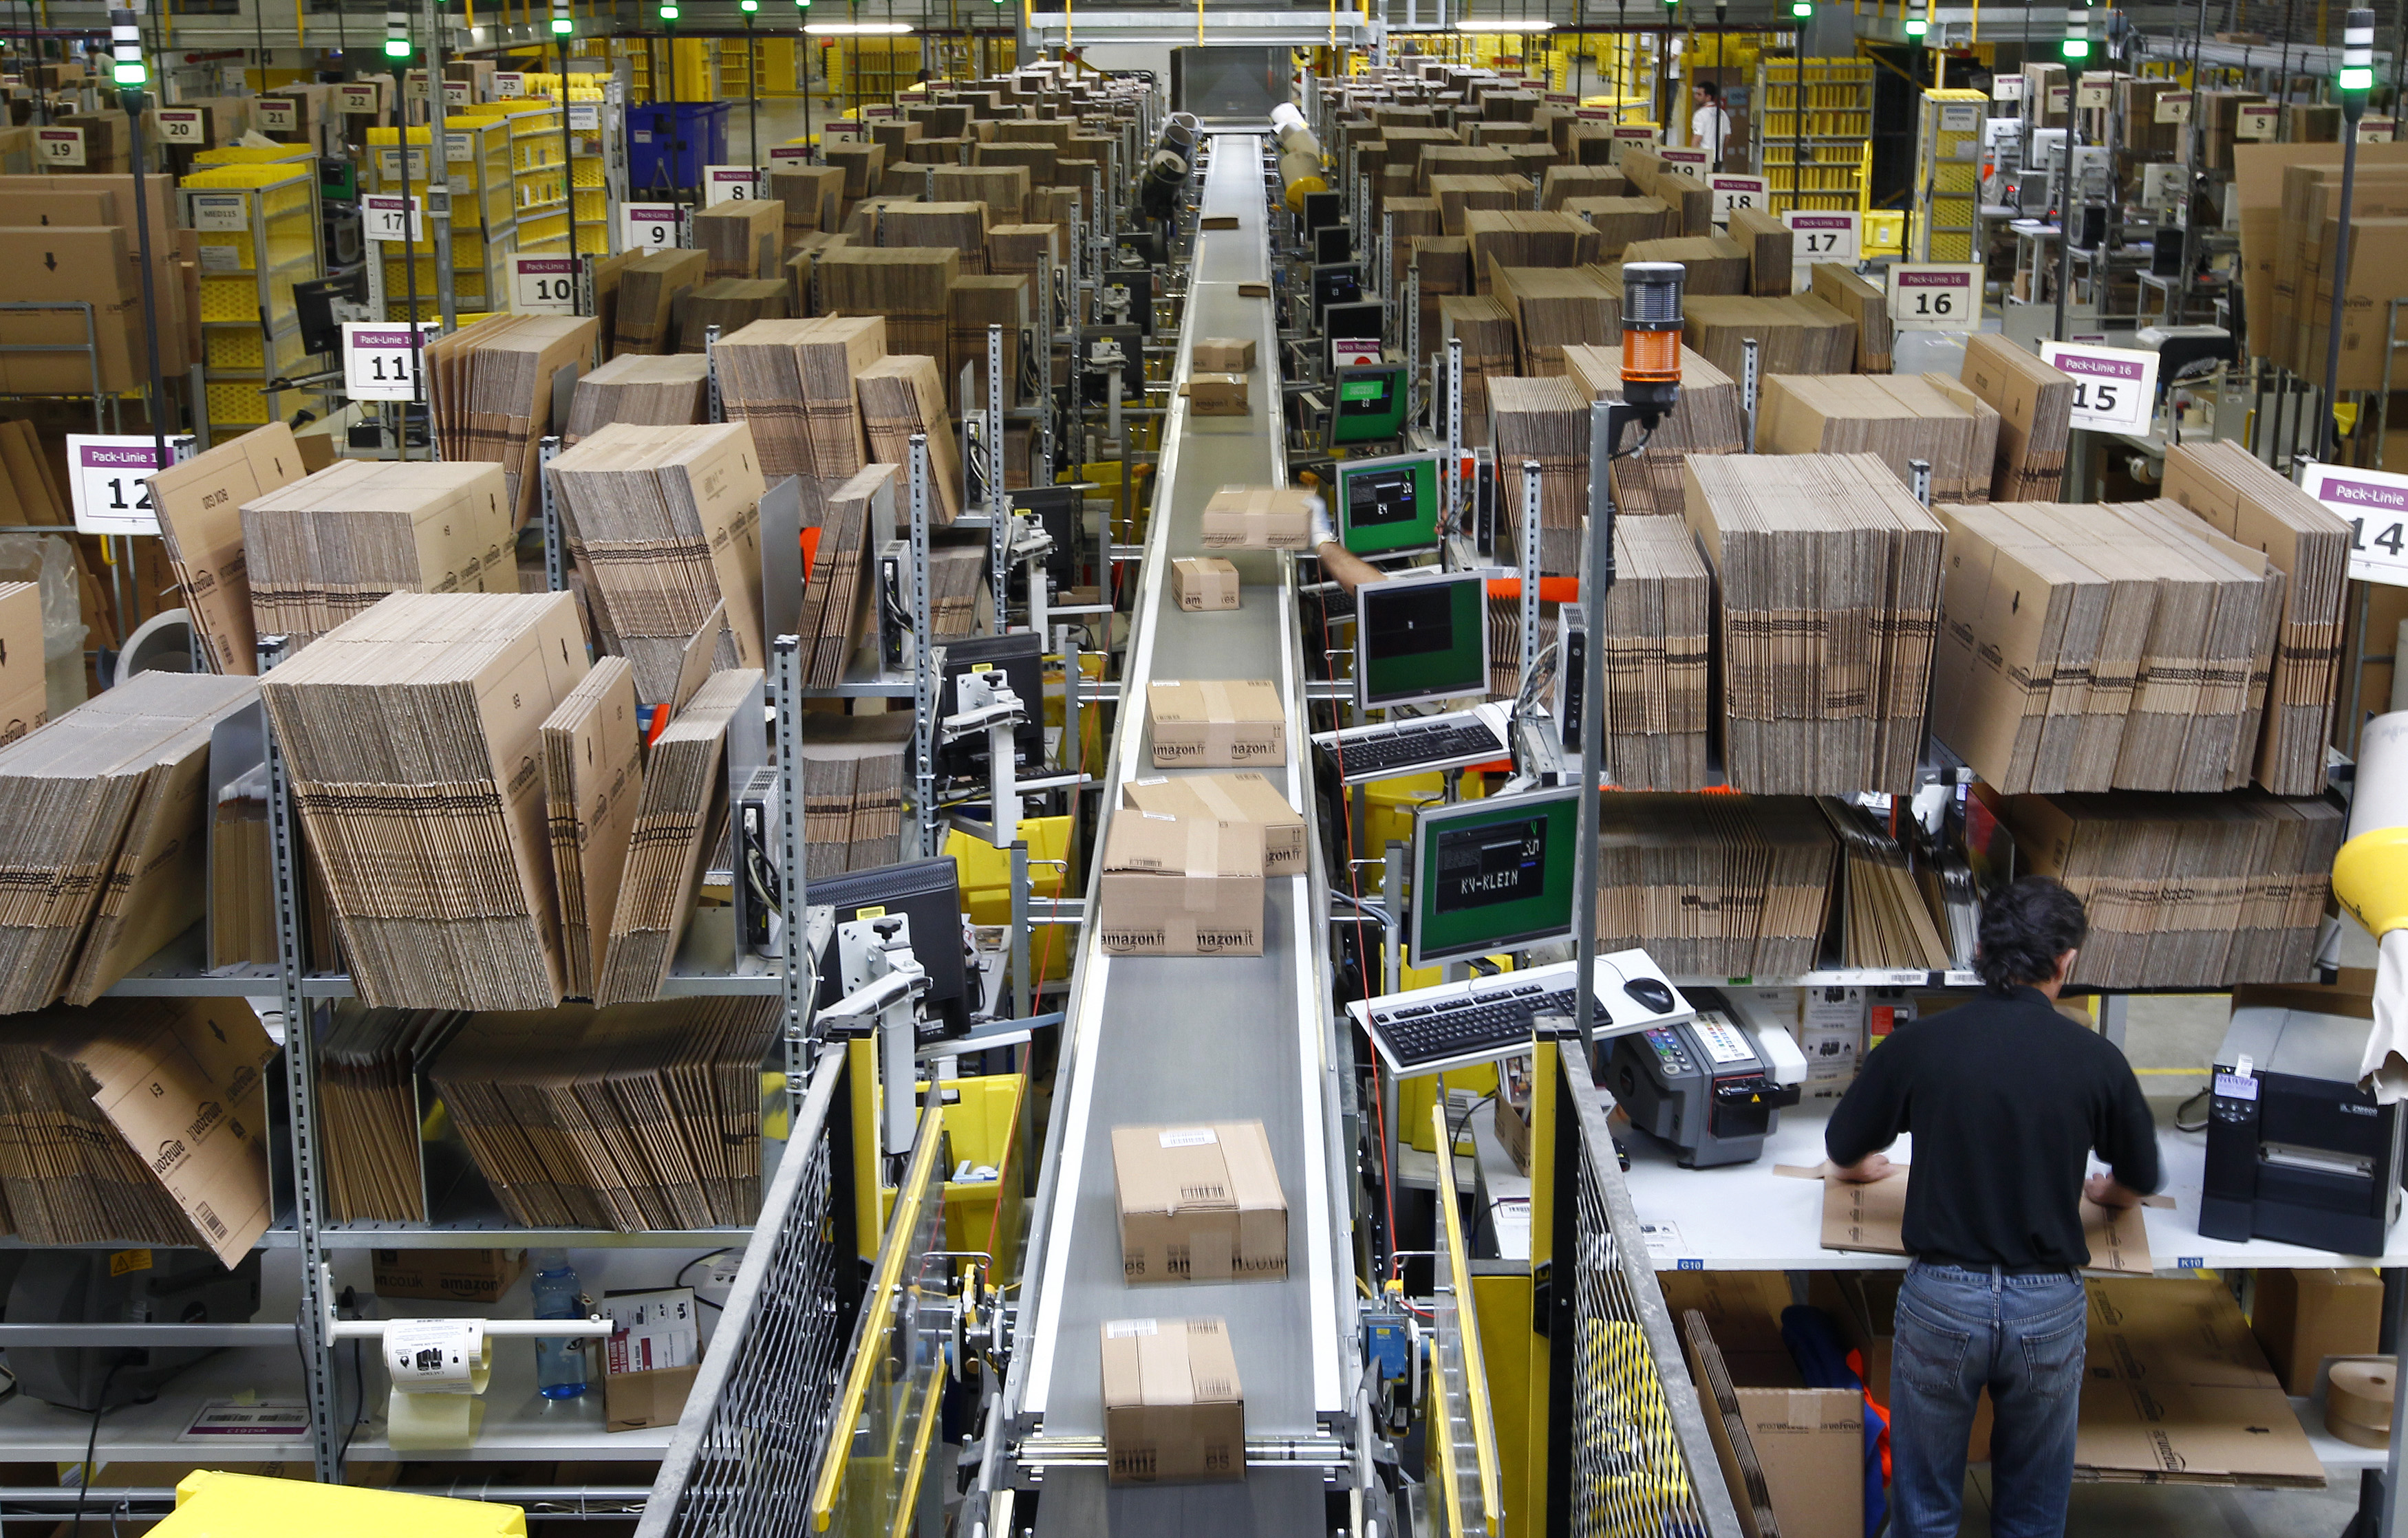 Workers pack boxes at Amazon's logistics center in Graben, Germany, on Dec. 16, 2013